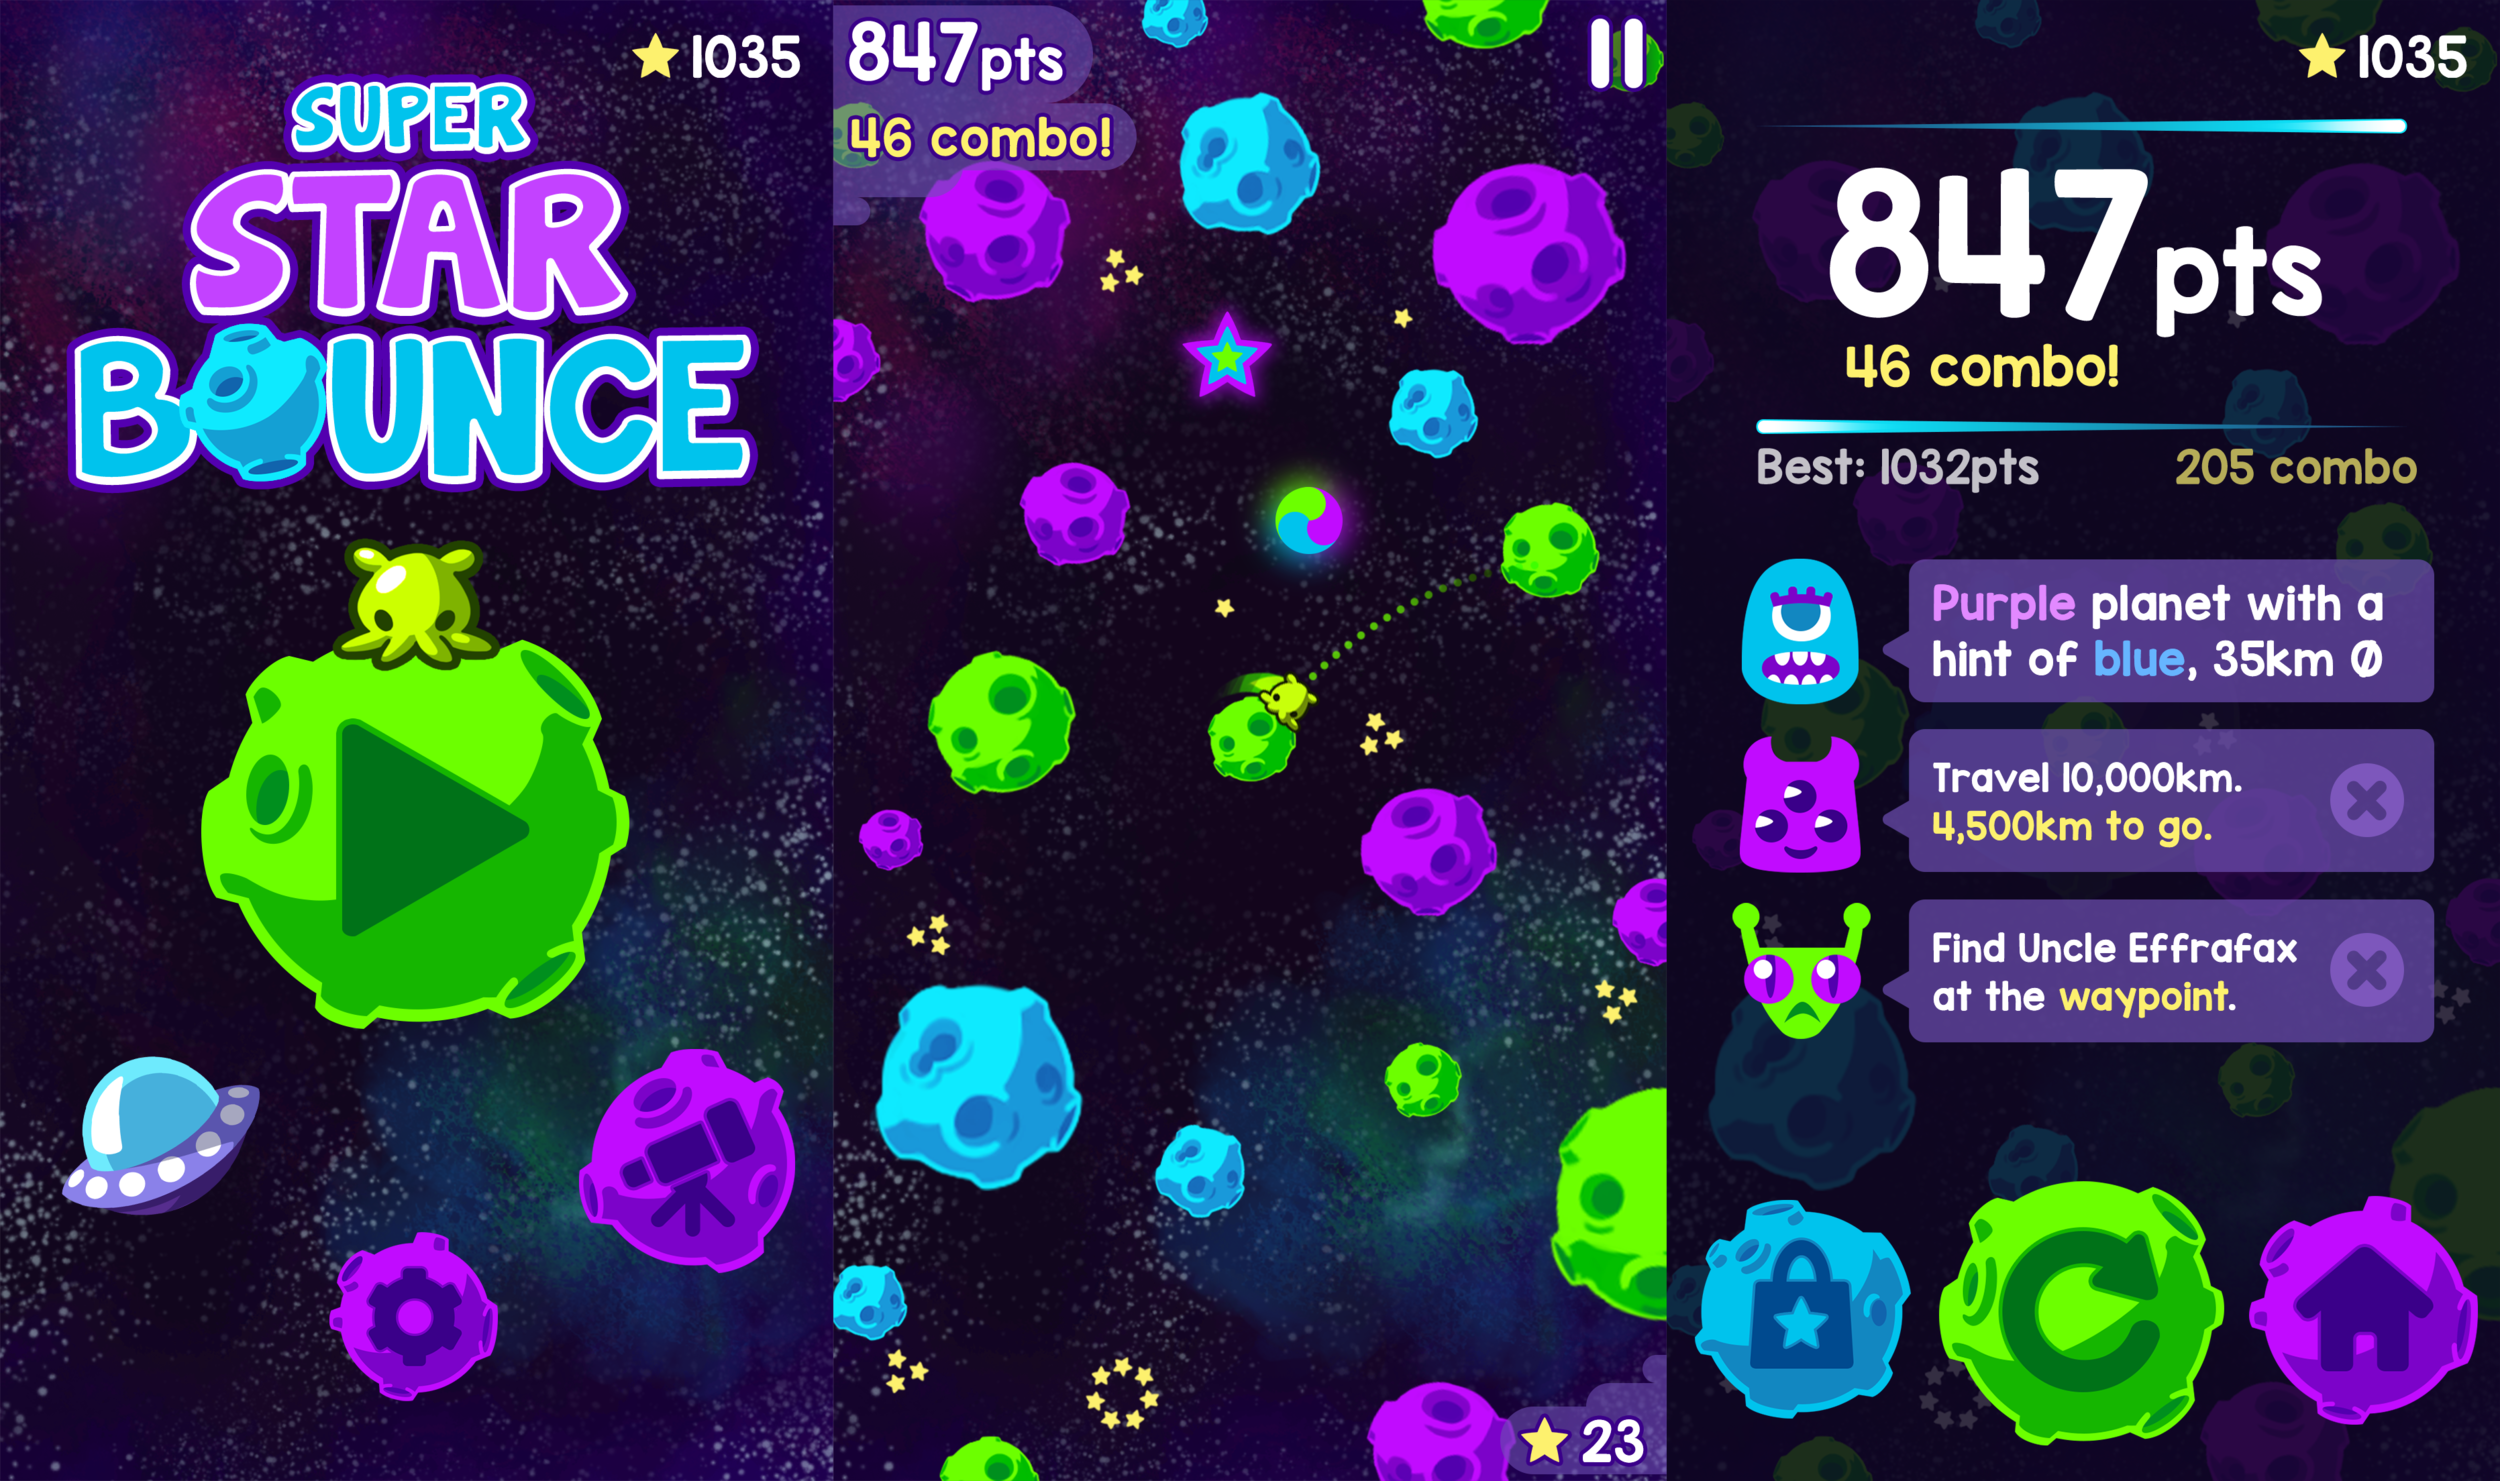 Super Star Bounce Game Over Screen